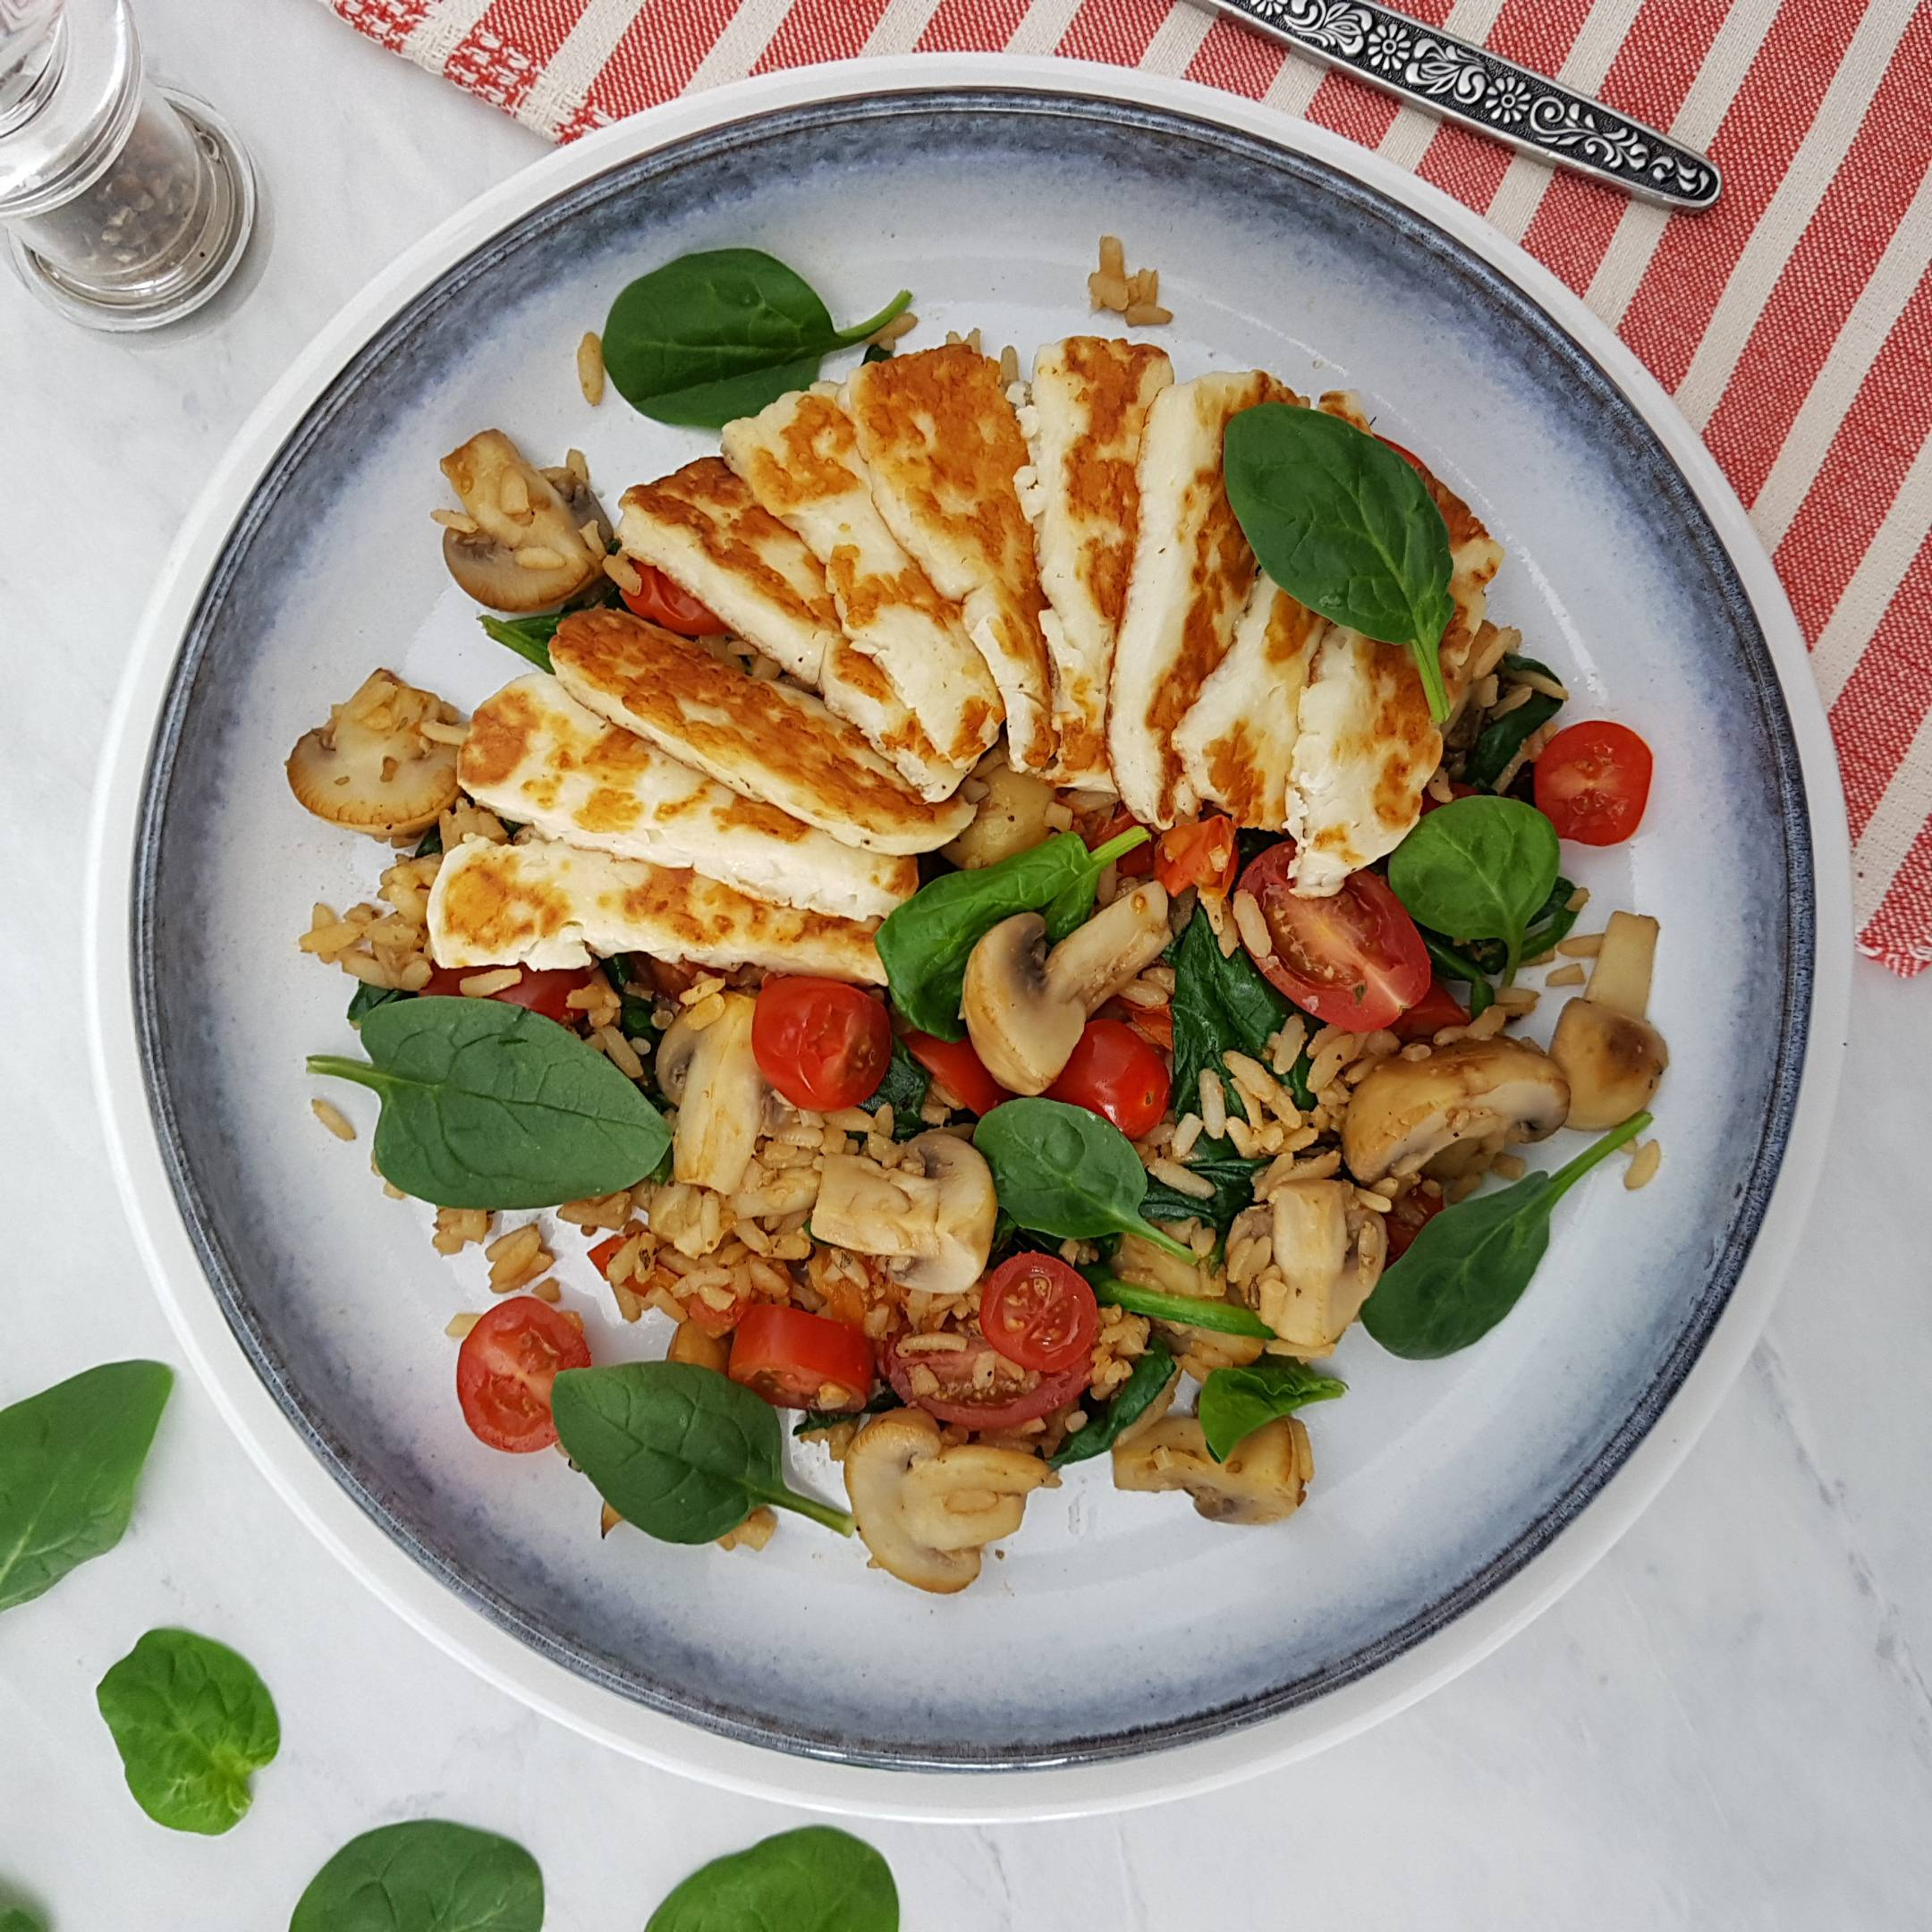 Season with 1 tbsp soy sauce if desired, and serve the halloumi on top of the rice